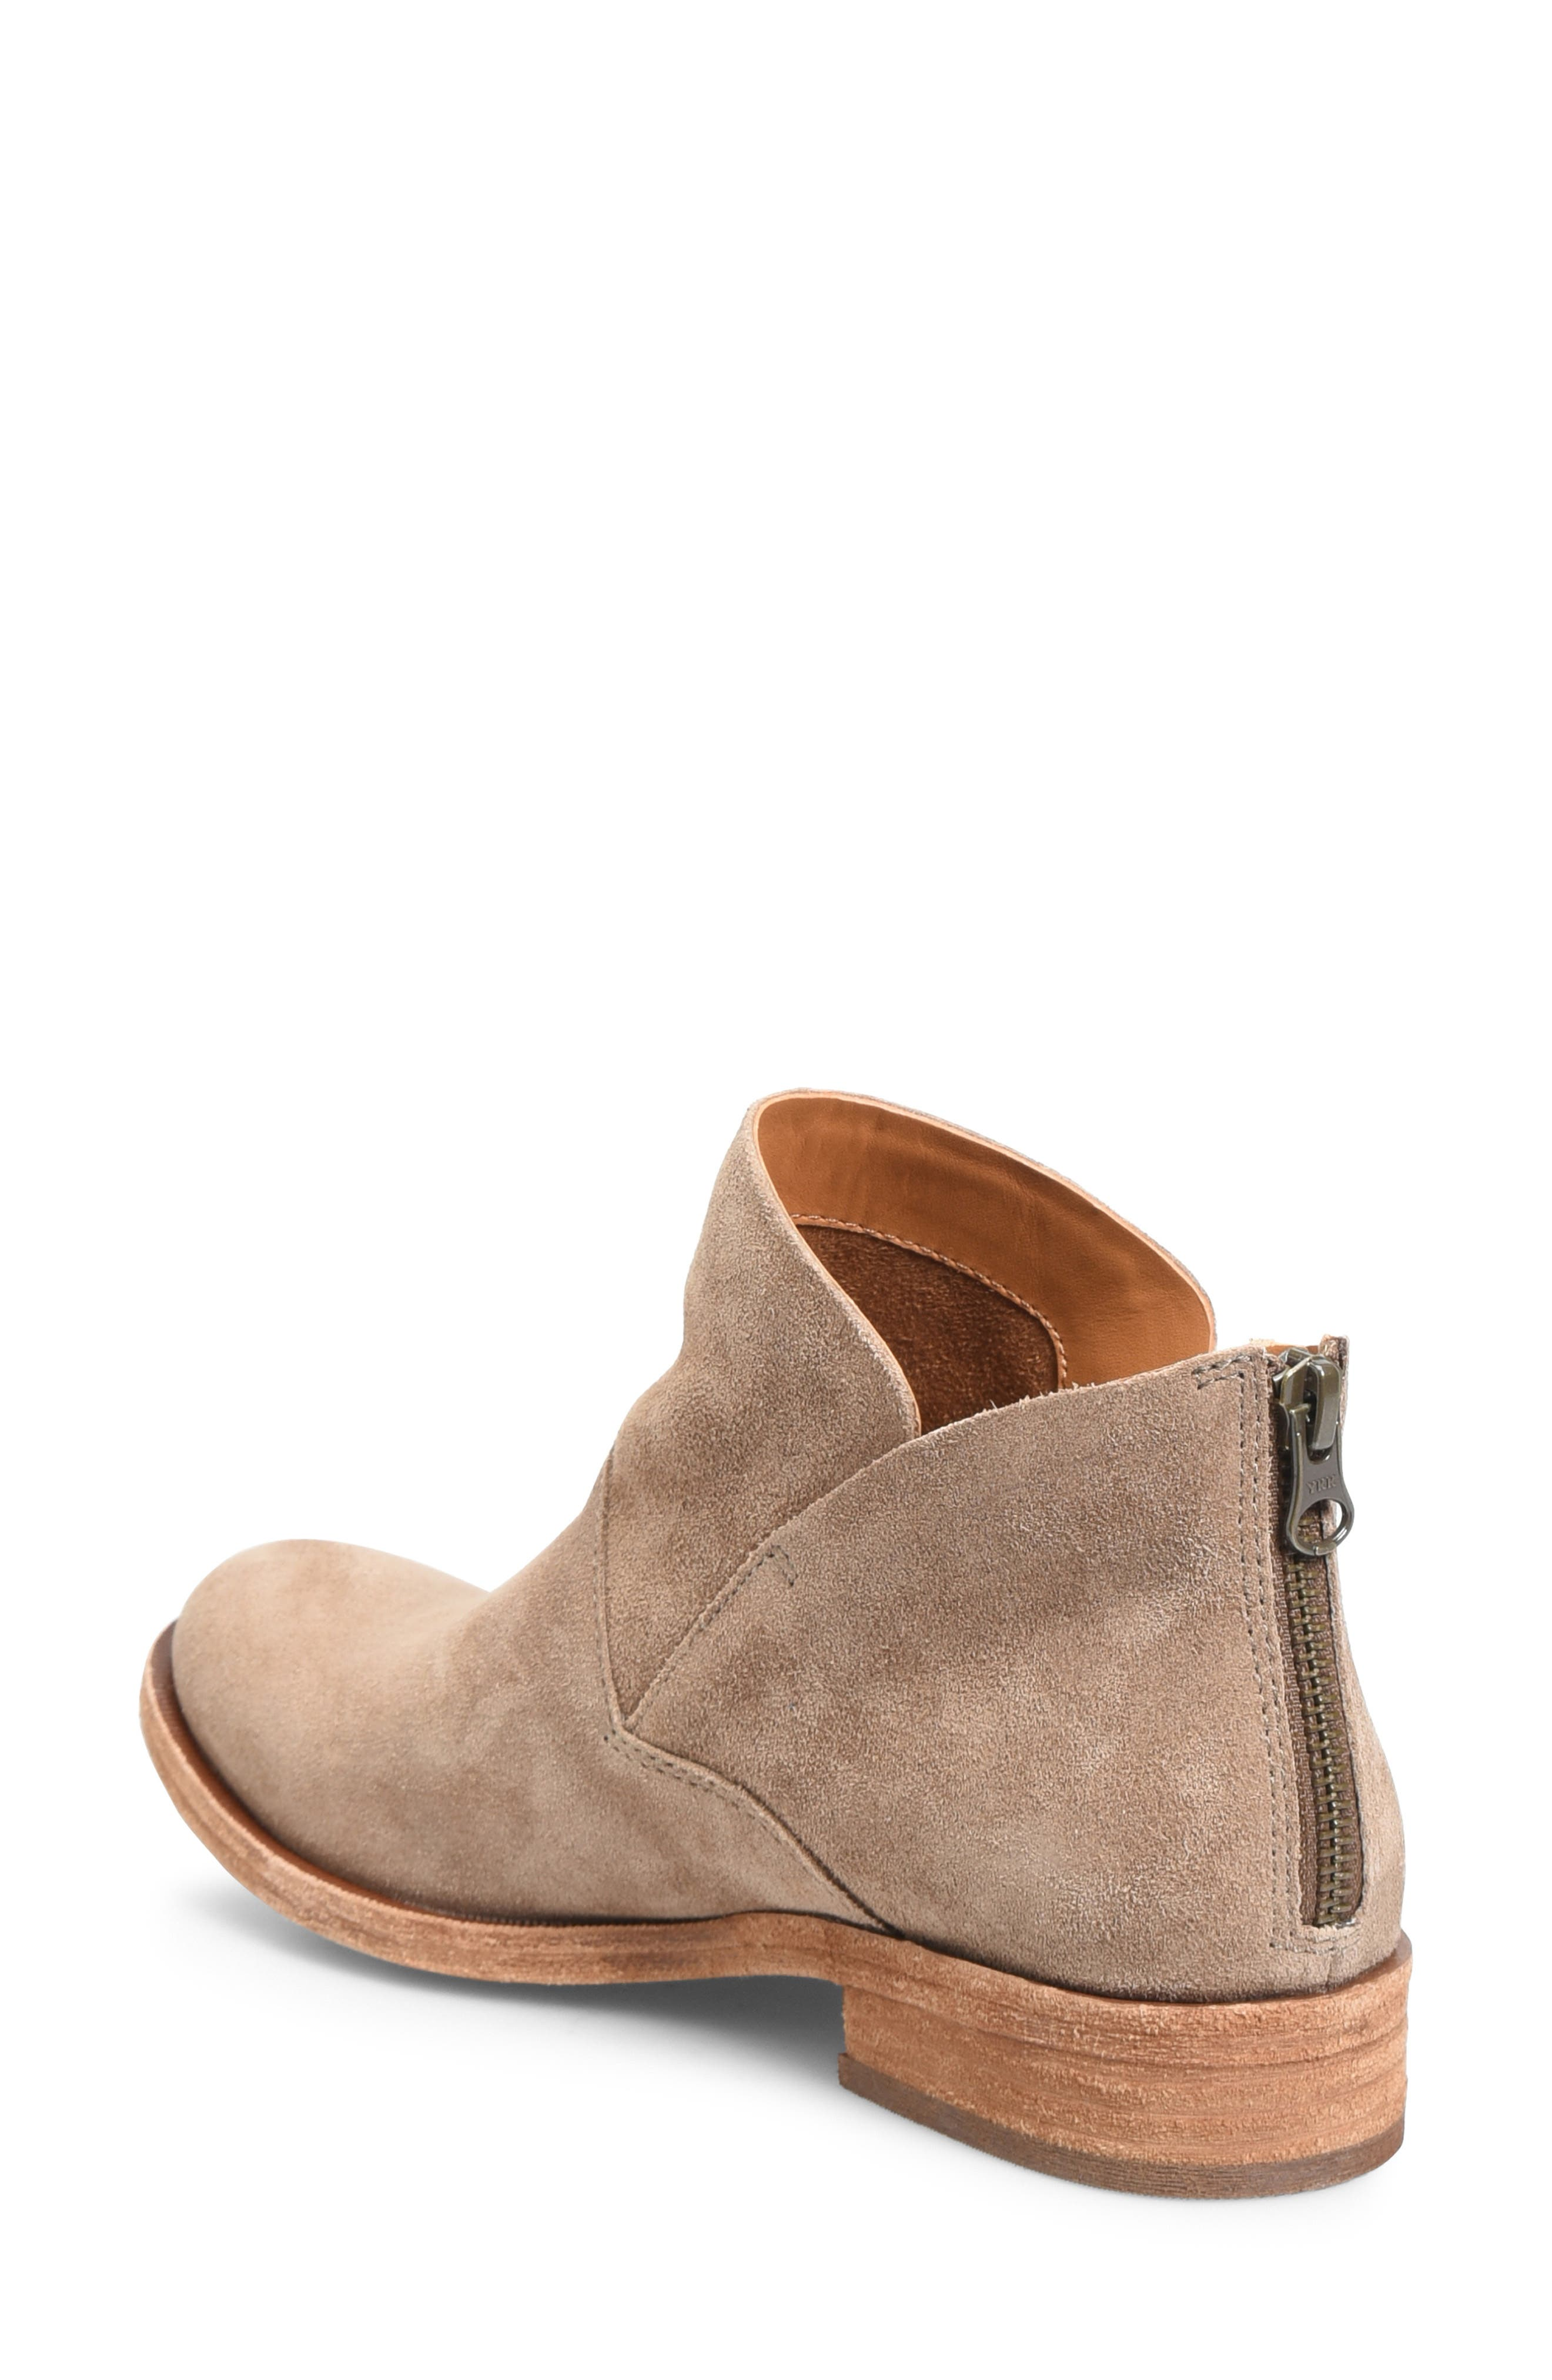 Ryder Ankle Boot,                             Alternate thumbnail 2, color,                             TAUPE GREY SUEDE